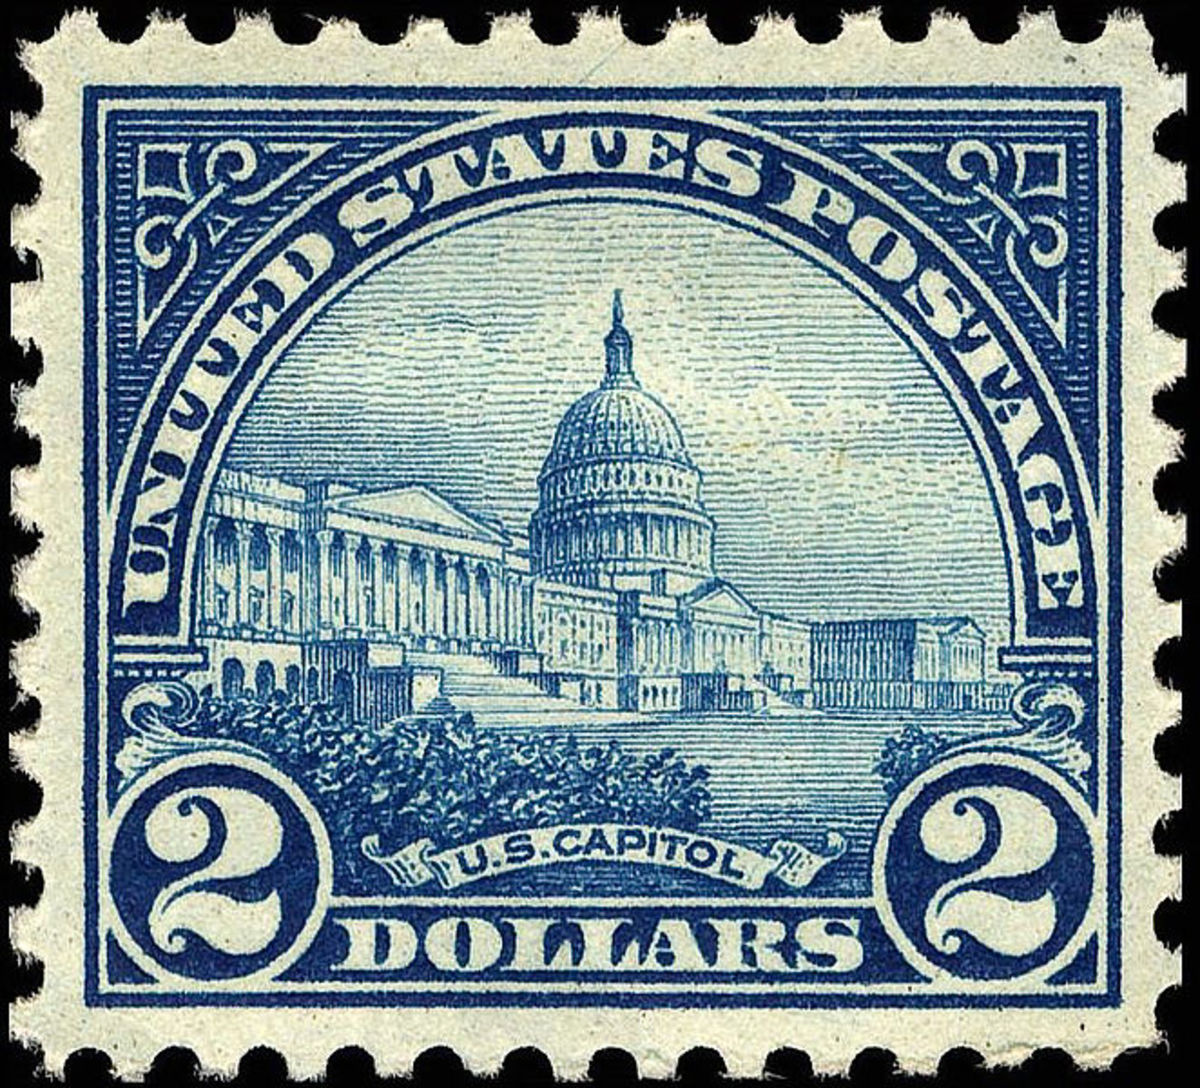 Neat old two dollar US stamp, with the US Capitol on it.  From 1922, and in the public domain.